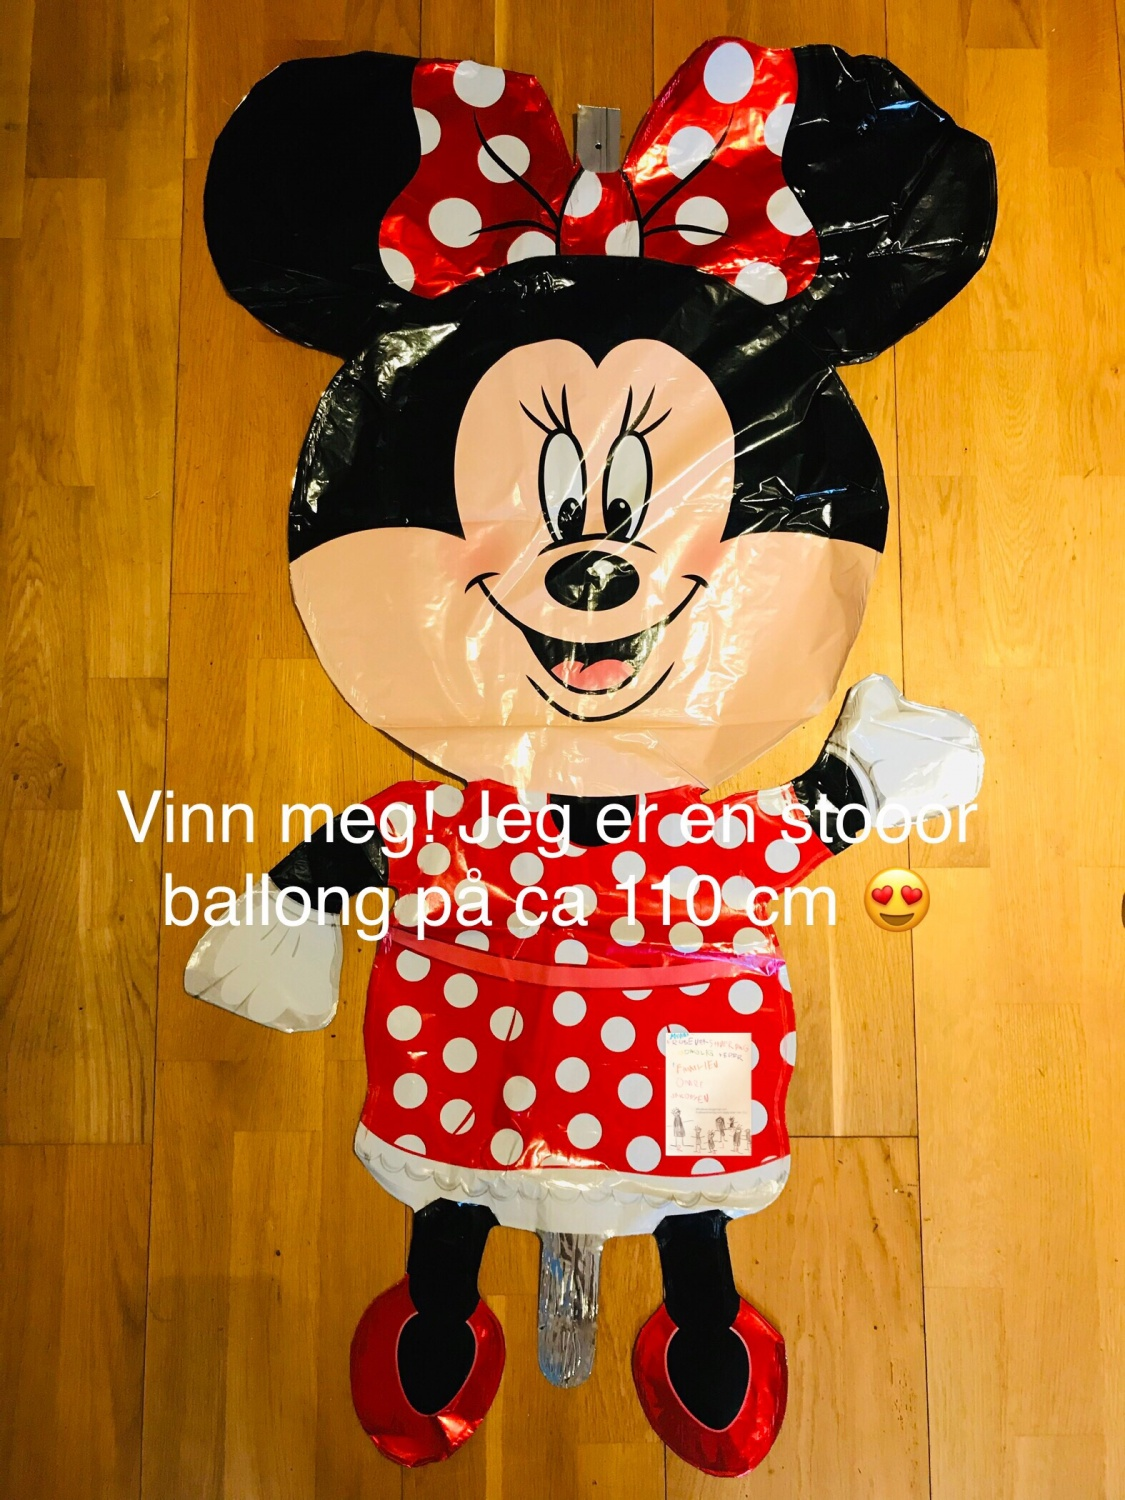 Frubevershverdag Mikke // Minnie mus give away